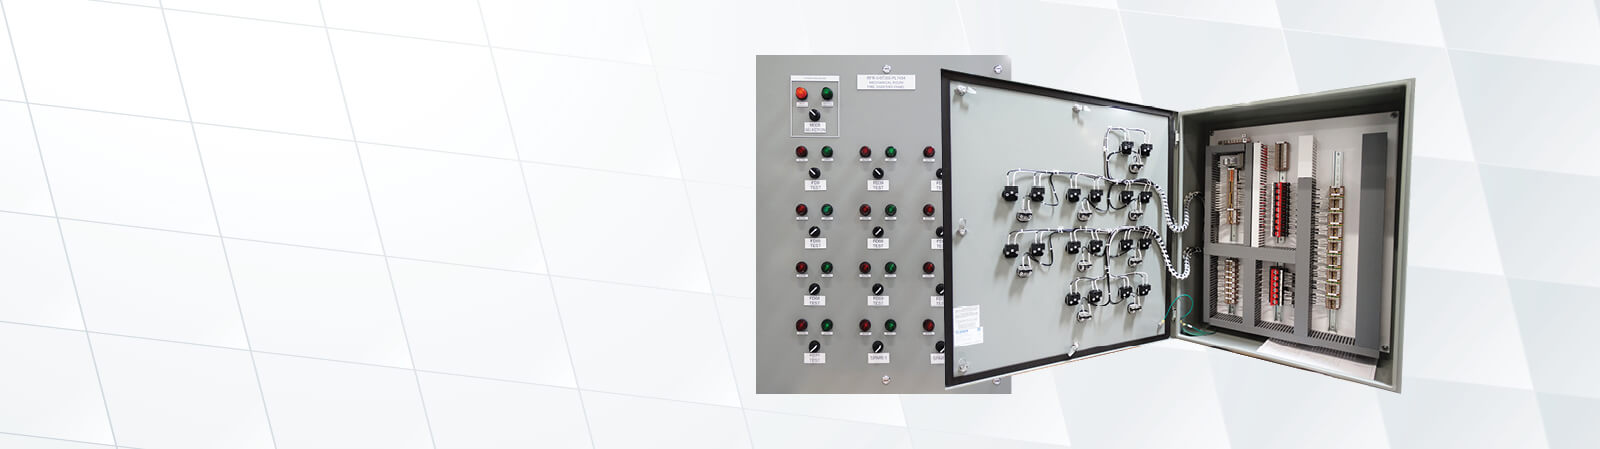 Control Panel Design & Fabrication